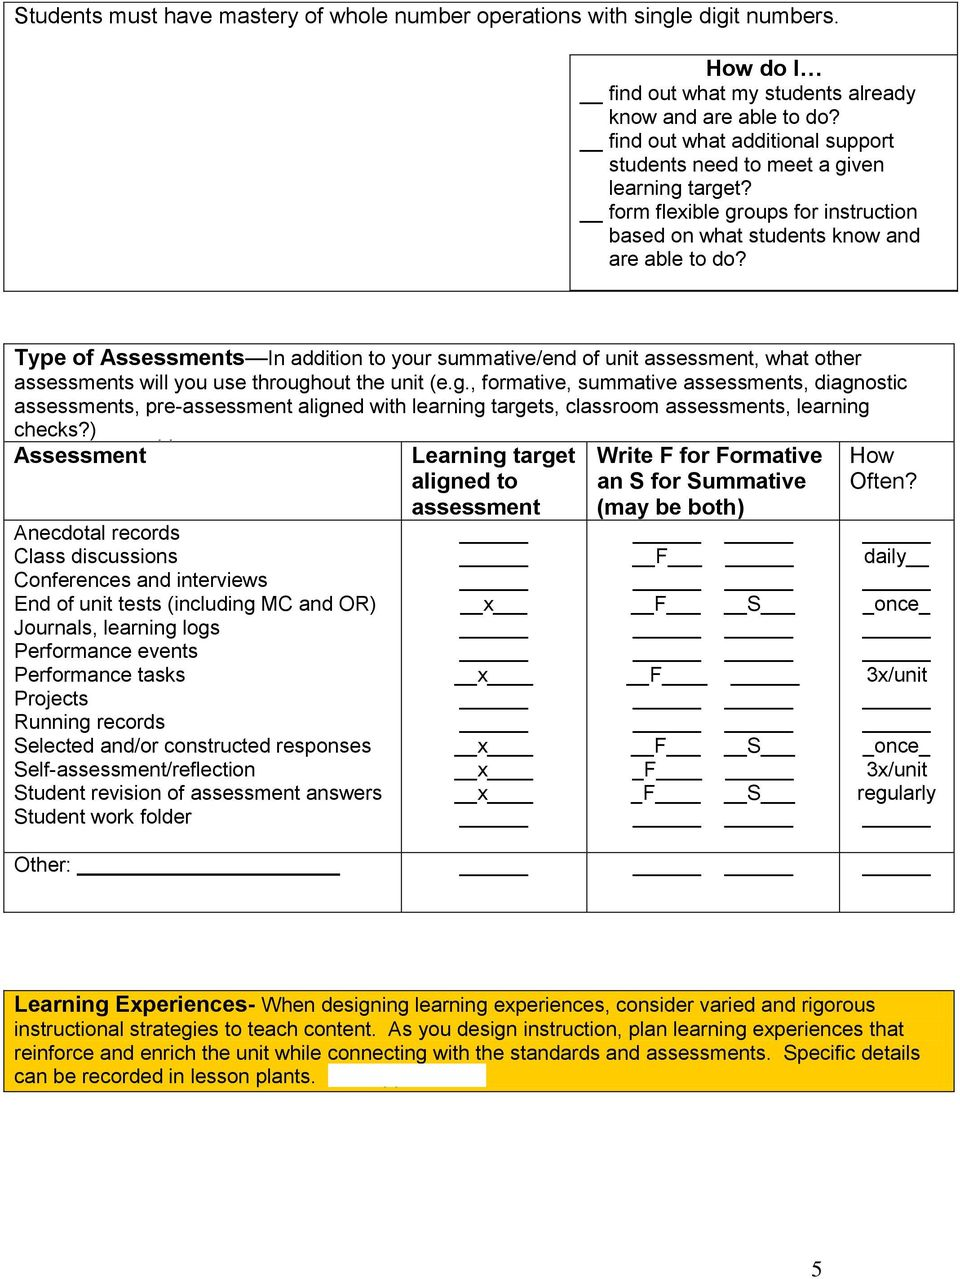 Type of Assessments In addition to your summative/end of unit assessment, what other assessments will you use through